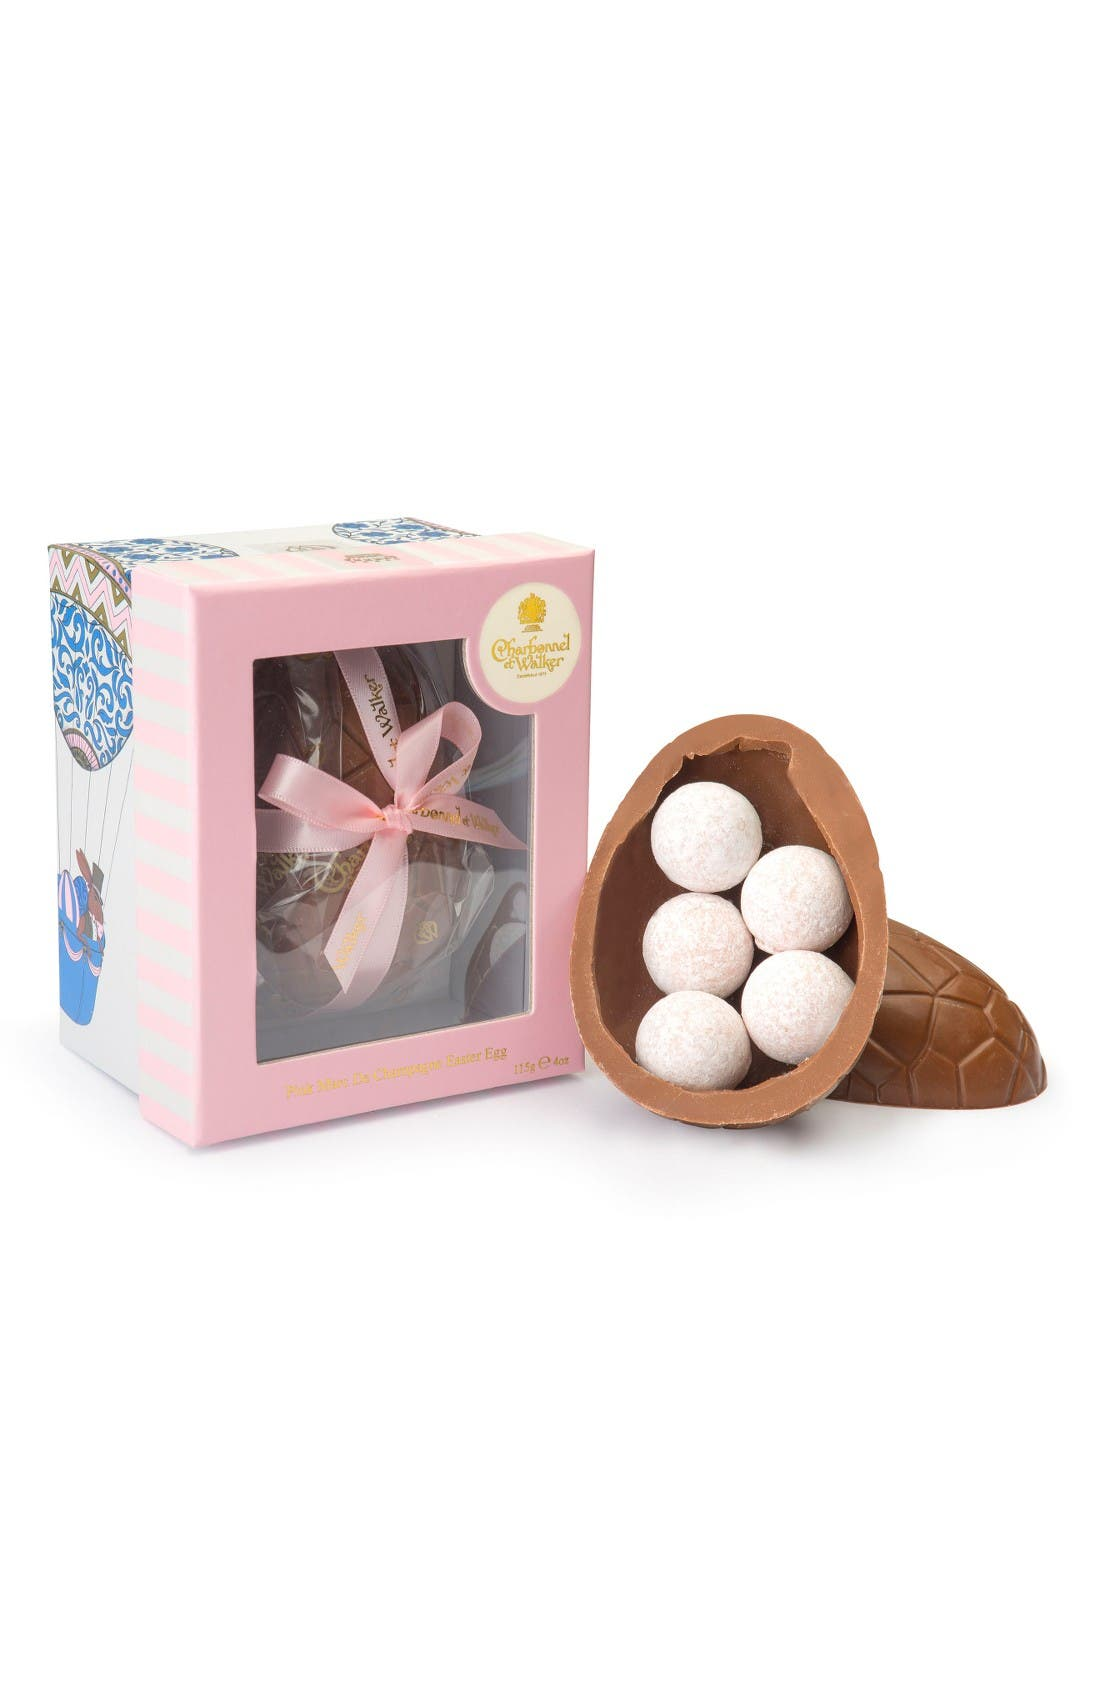 Marc de Champagne Truffles & Chocolate Egg in Gift Box,                             Main thumbnail 1, color,                             Milk/ Pink Champagne